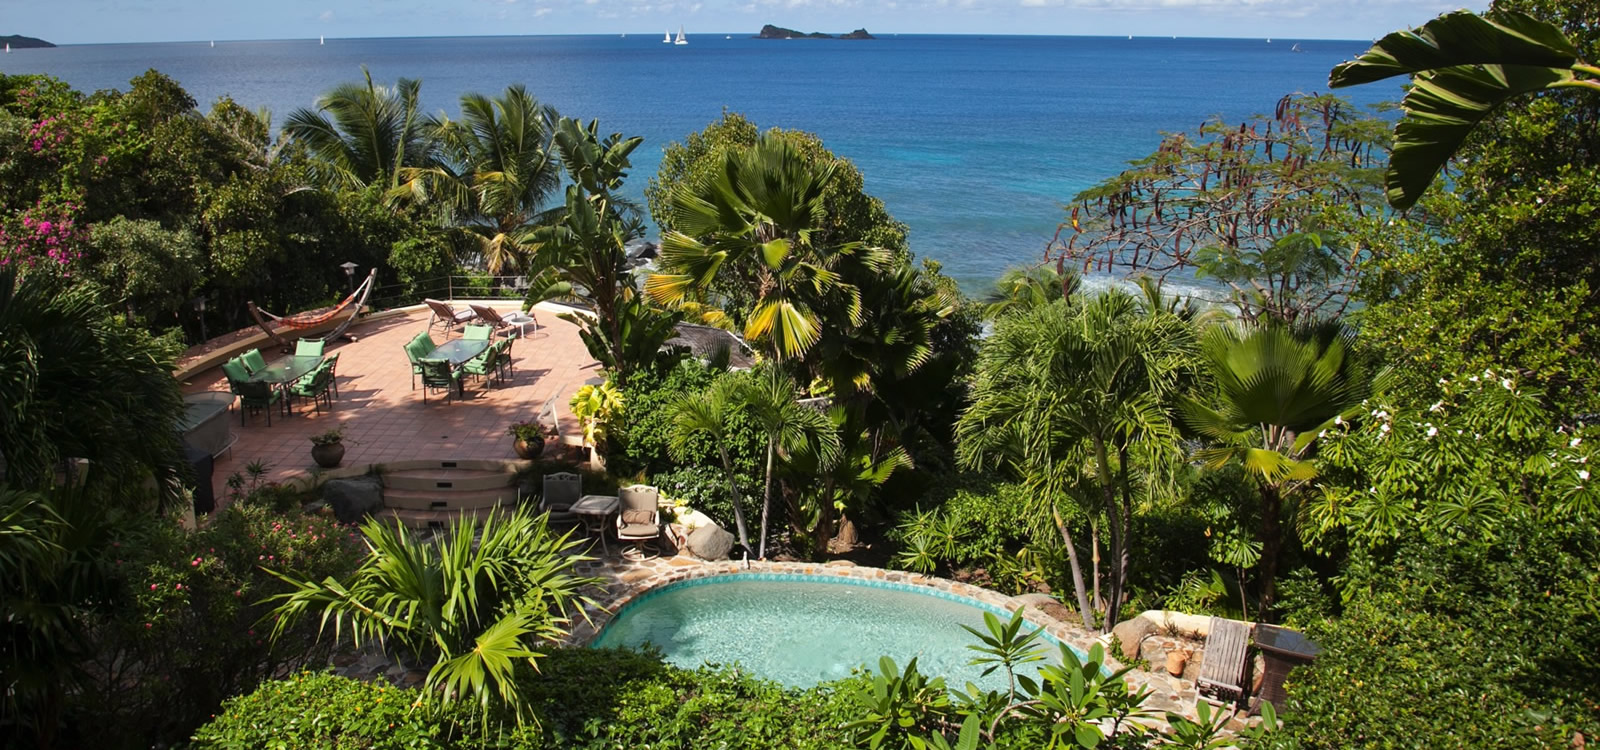 Buying Real Estate In The Virgin Islands